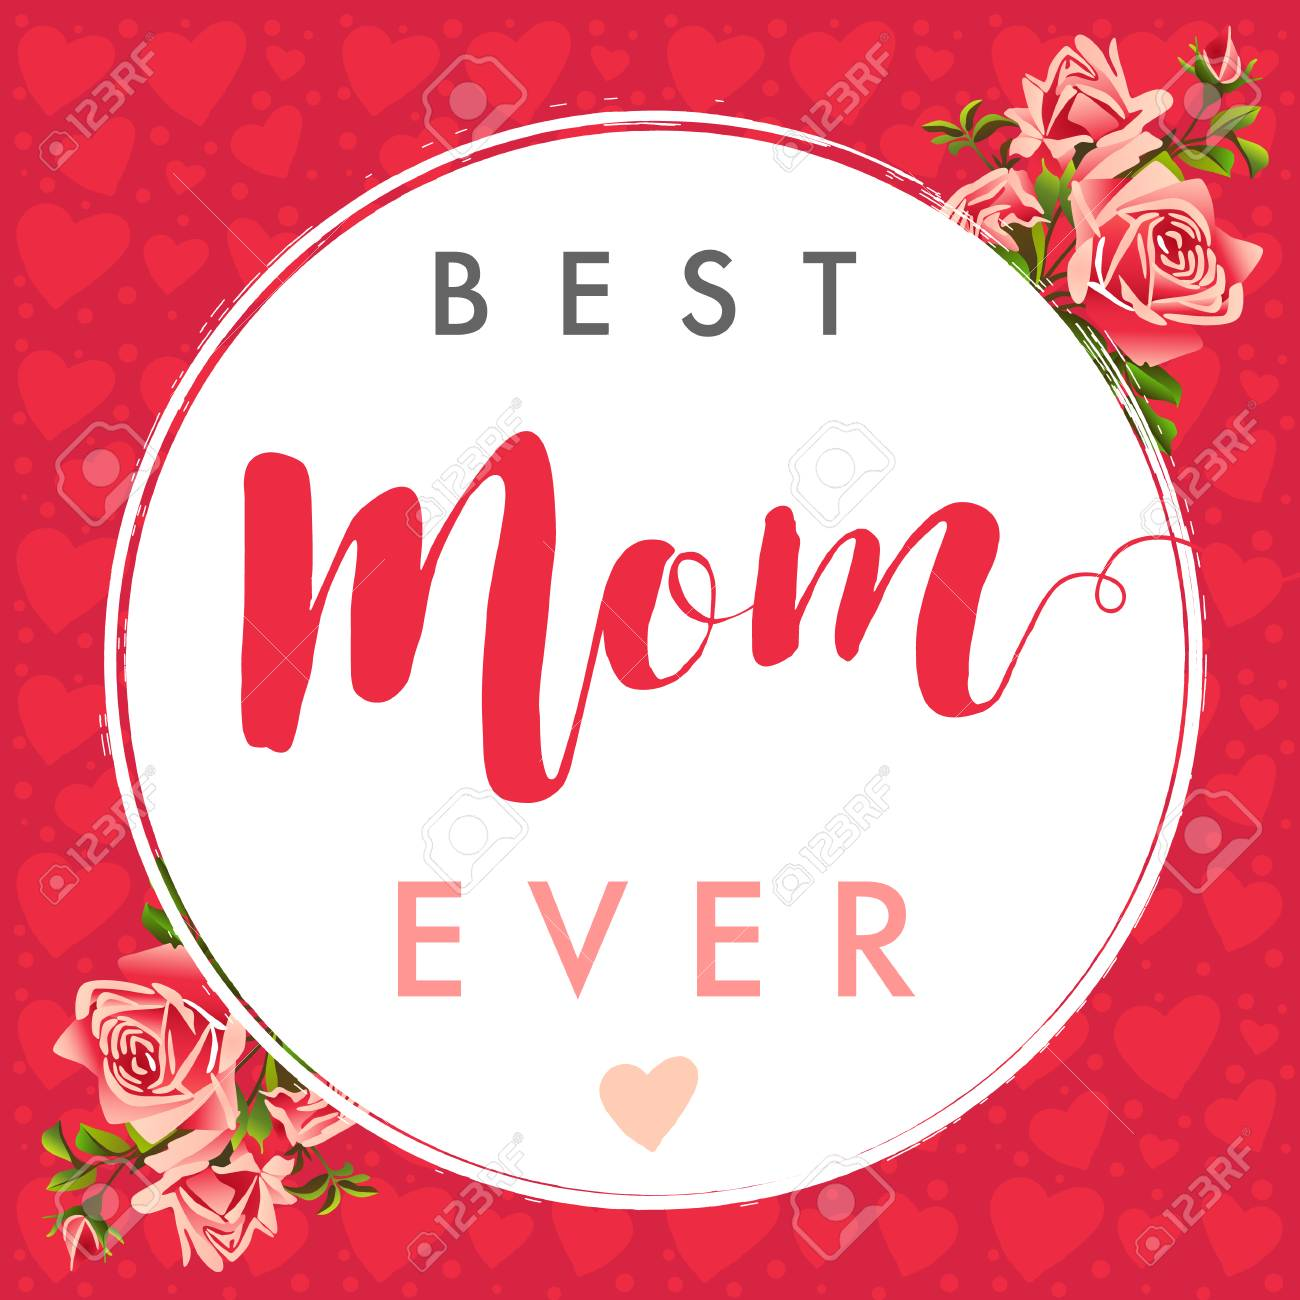 Best Mom Calligraphy Rose Banner Happy Mothers Day Layout Design